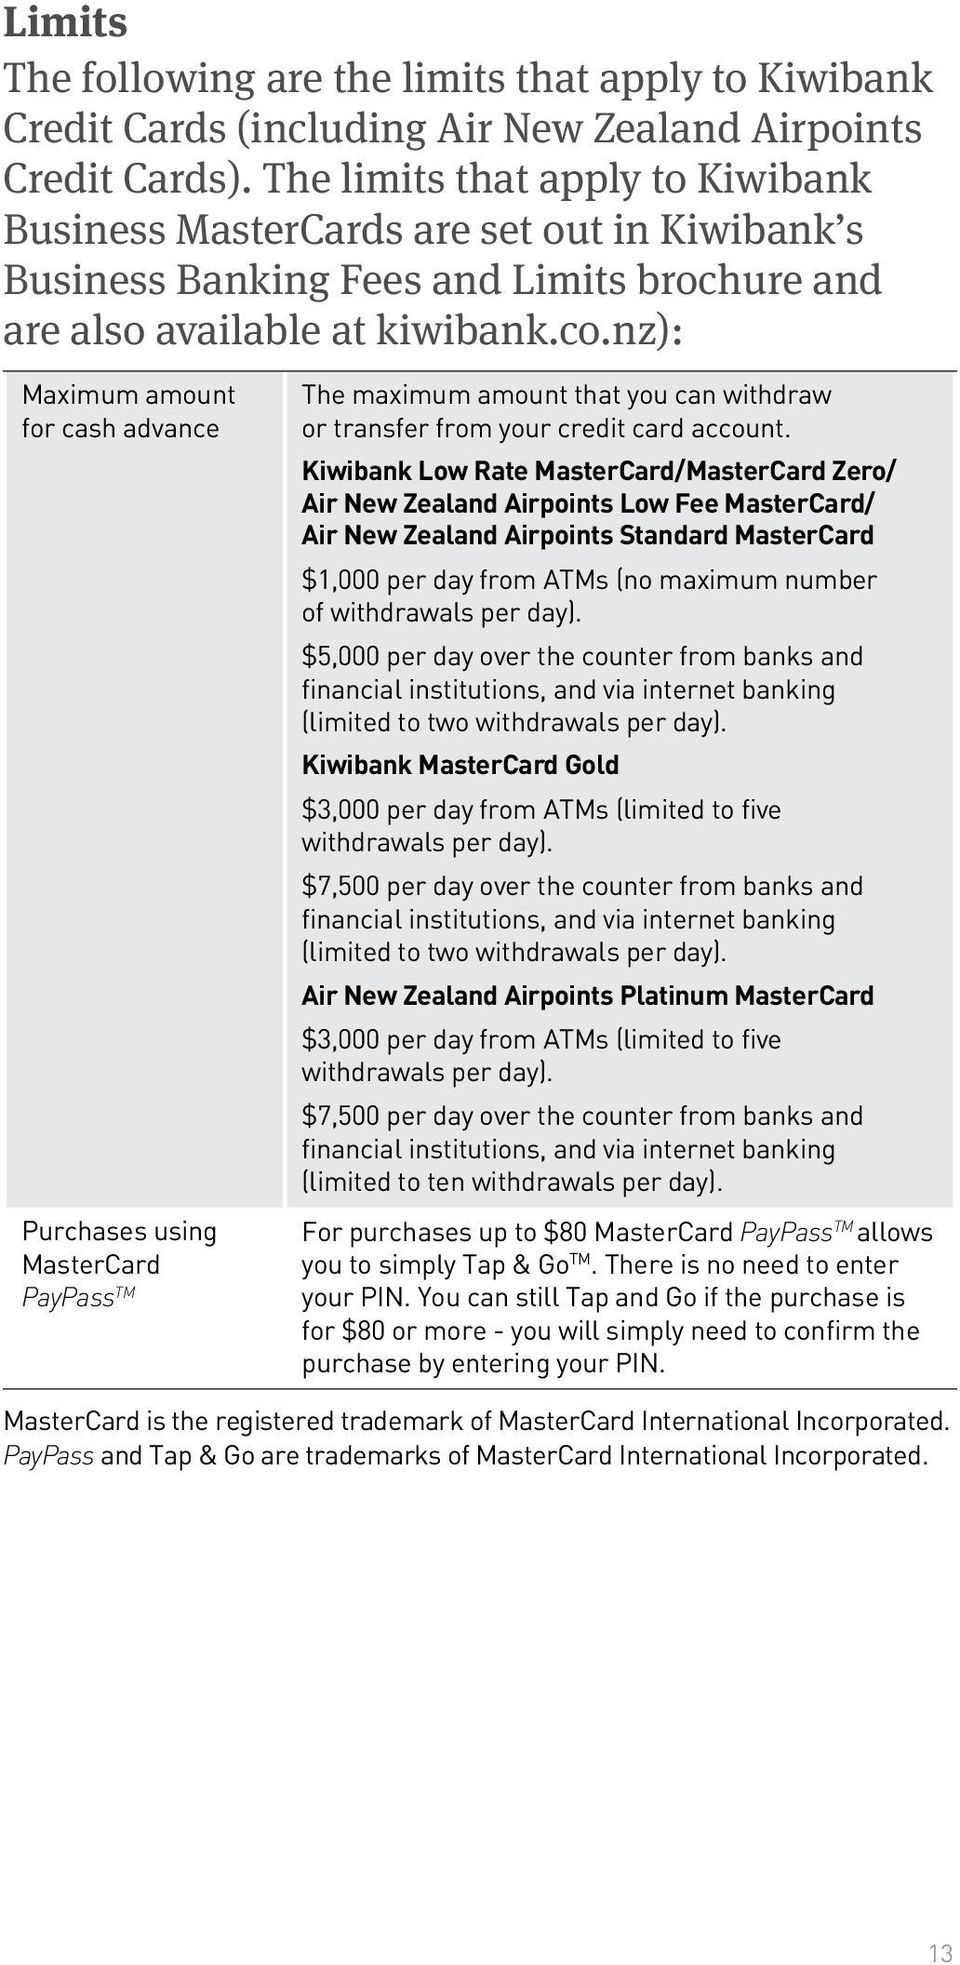 nz): Maximum amount for cash advance Purchases using MasterCard PayPass TM The maximum amount that you can withdraw or transfer from your credit card account.